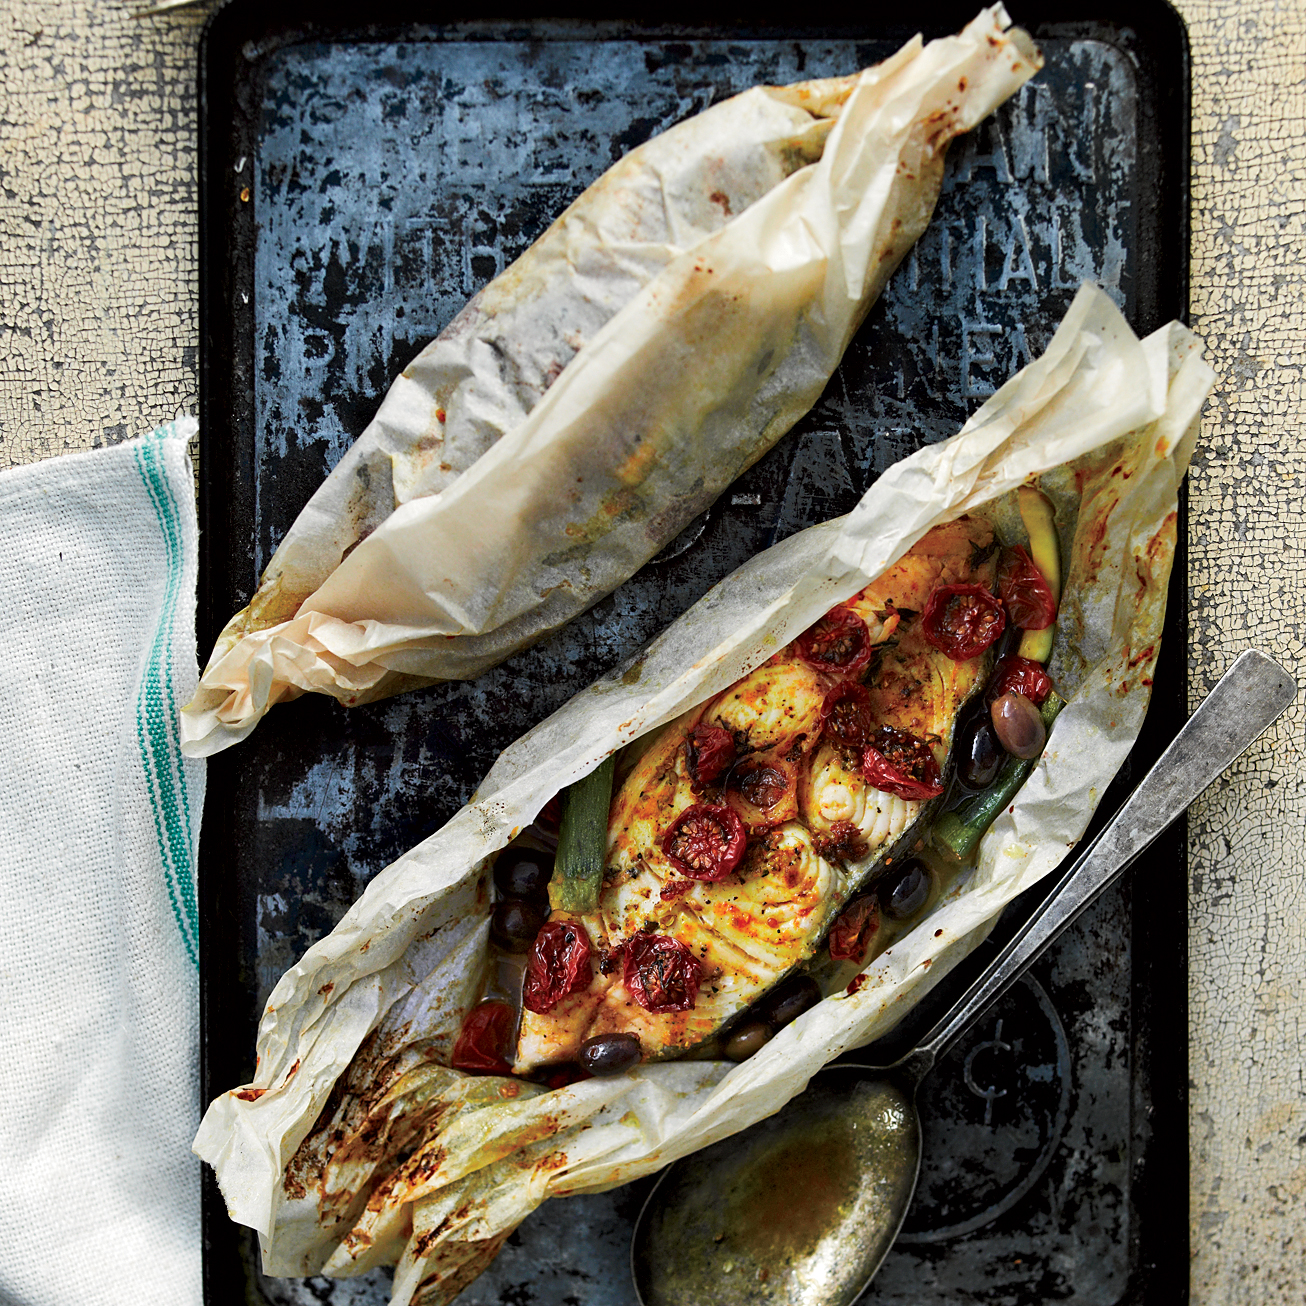 201109-r-halibut-vegetables-papillote.jpg